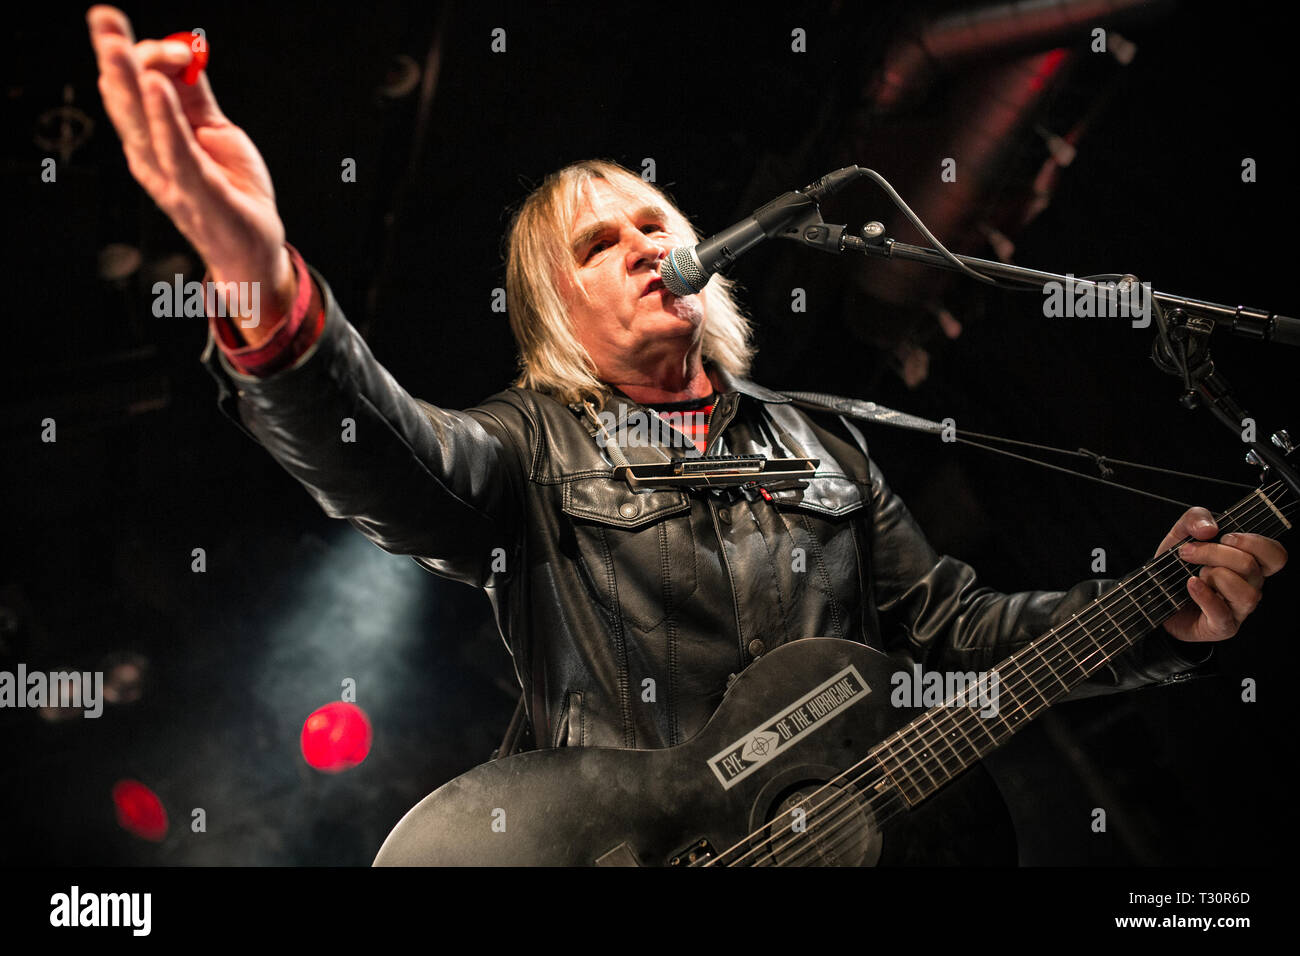 Norway, Oslo - April 4, 2019. The Welsh rock band The Alarm performs live concert at John Dee in Oslo. Here vocalist and guitarist Mike Peters is seen live on stage. (Photo credit: Gonzales Photo - Terje Dokken). Credit: Gonzales Photo/Alamy Live News Stock Photo